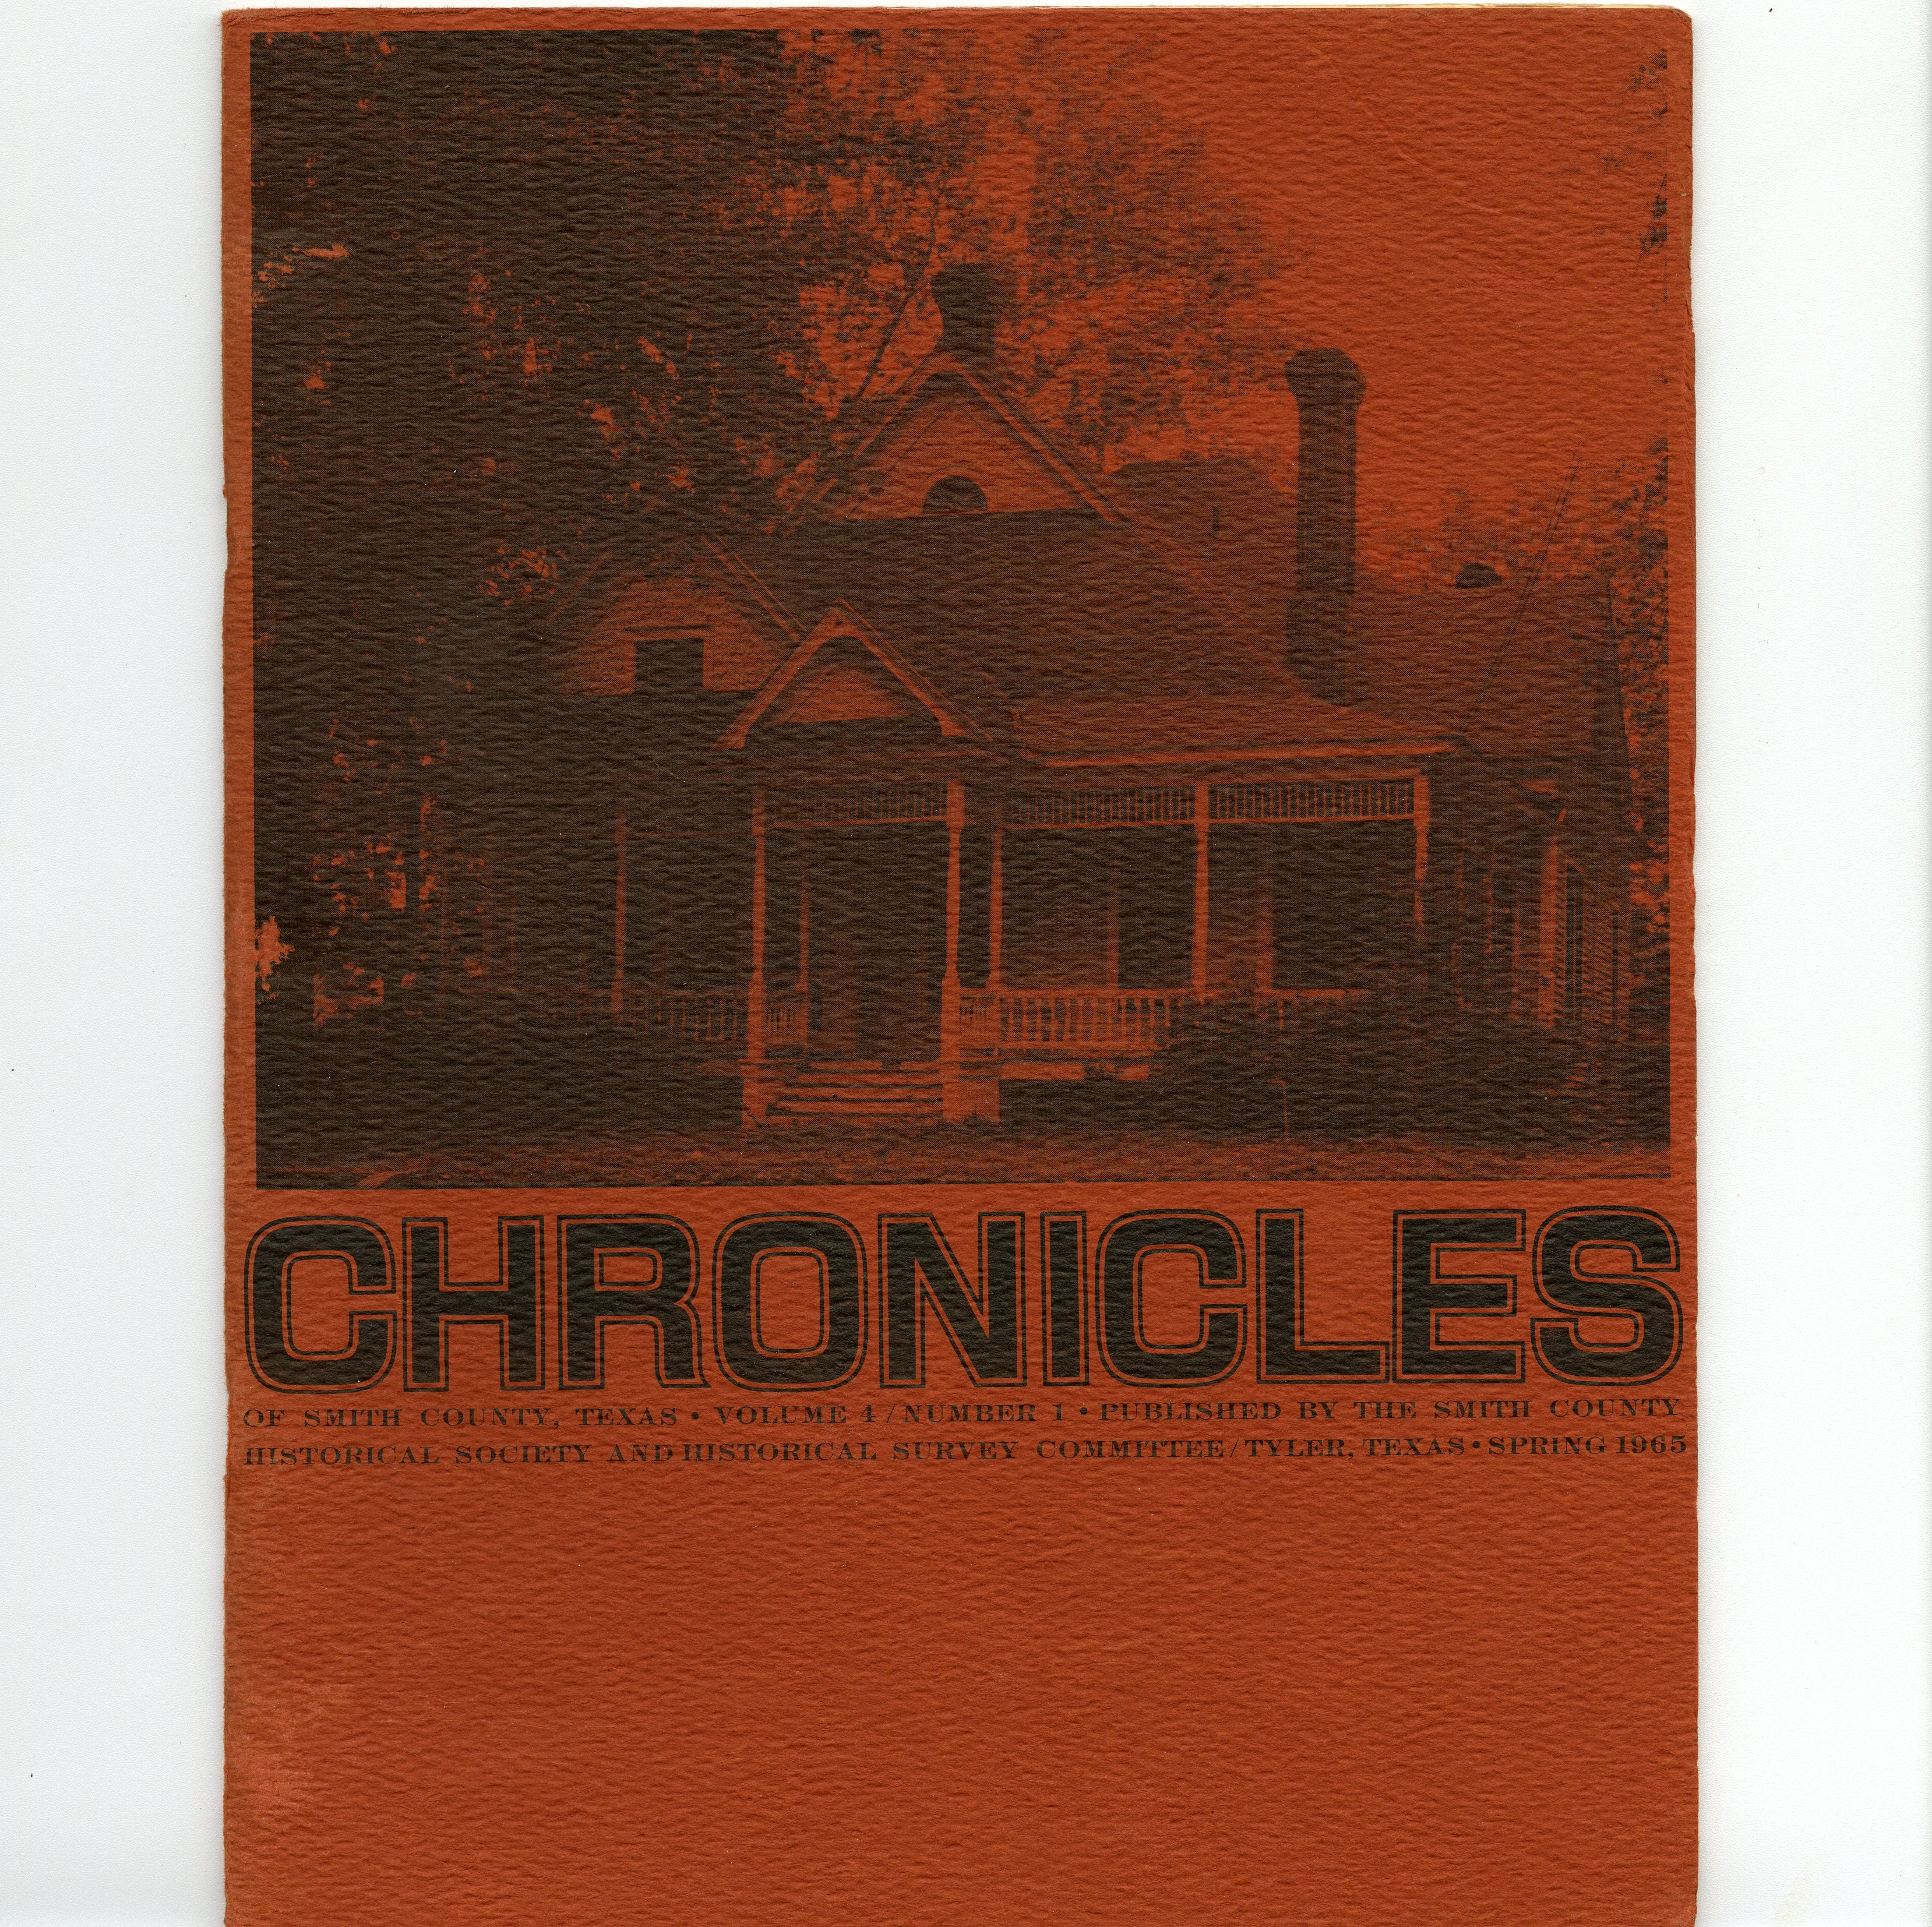 Chronicles of Smith County, Texas, Volume 4 Issue 1, Spring 1965.